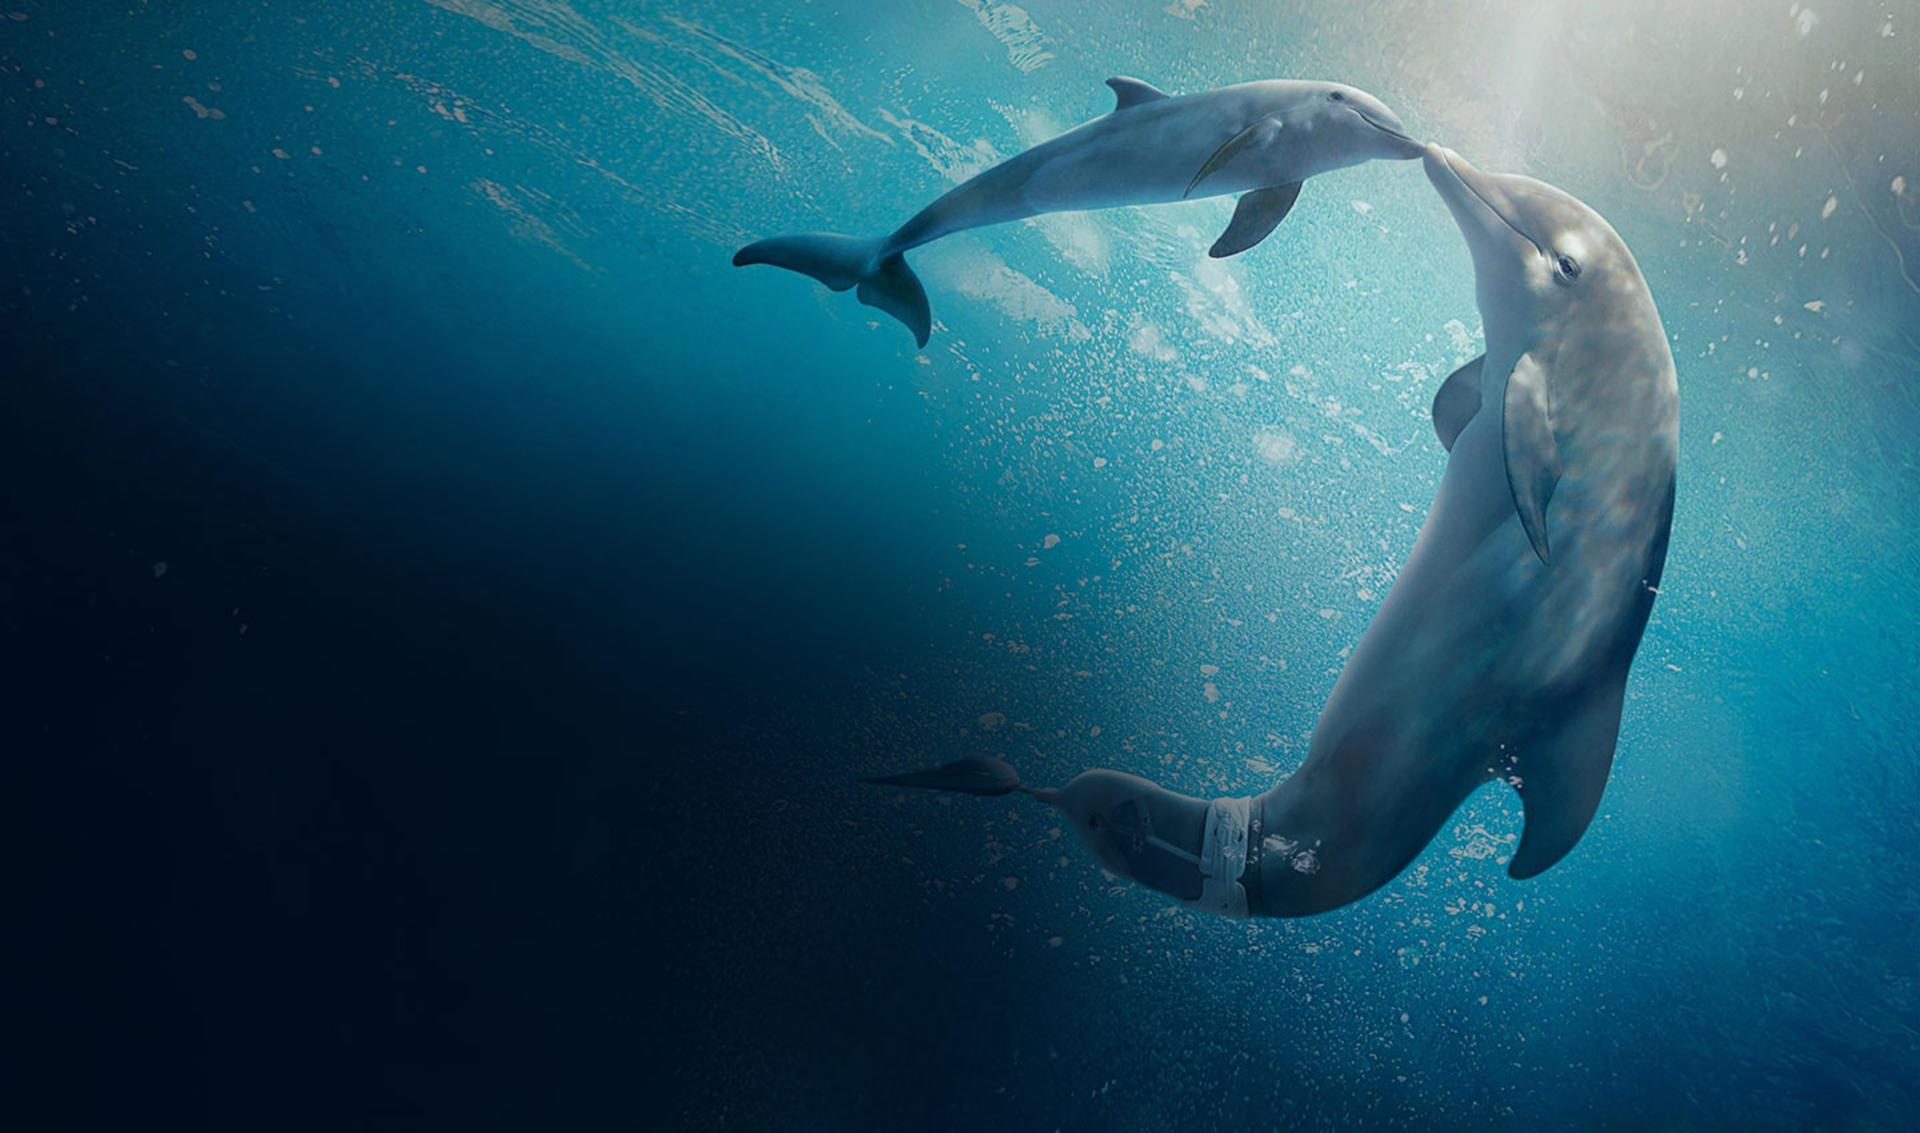 3D Scanning of injured dolphin creates prosthetic tail